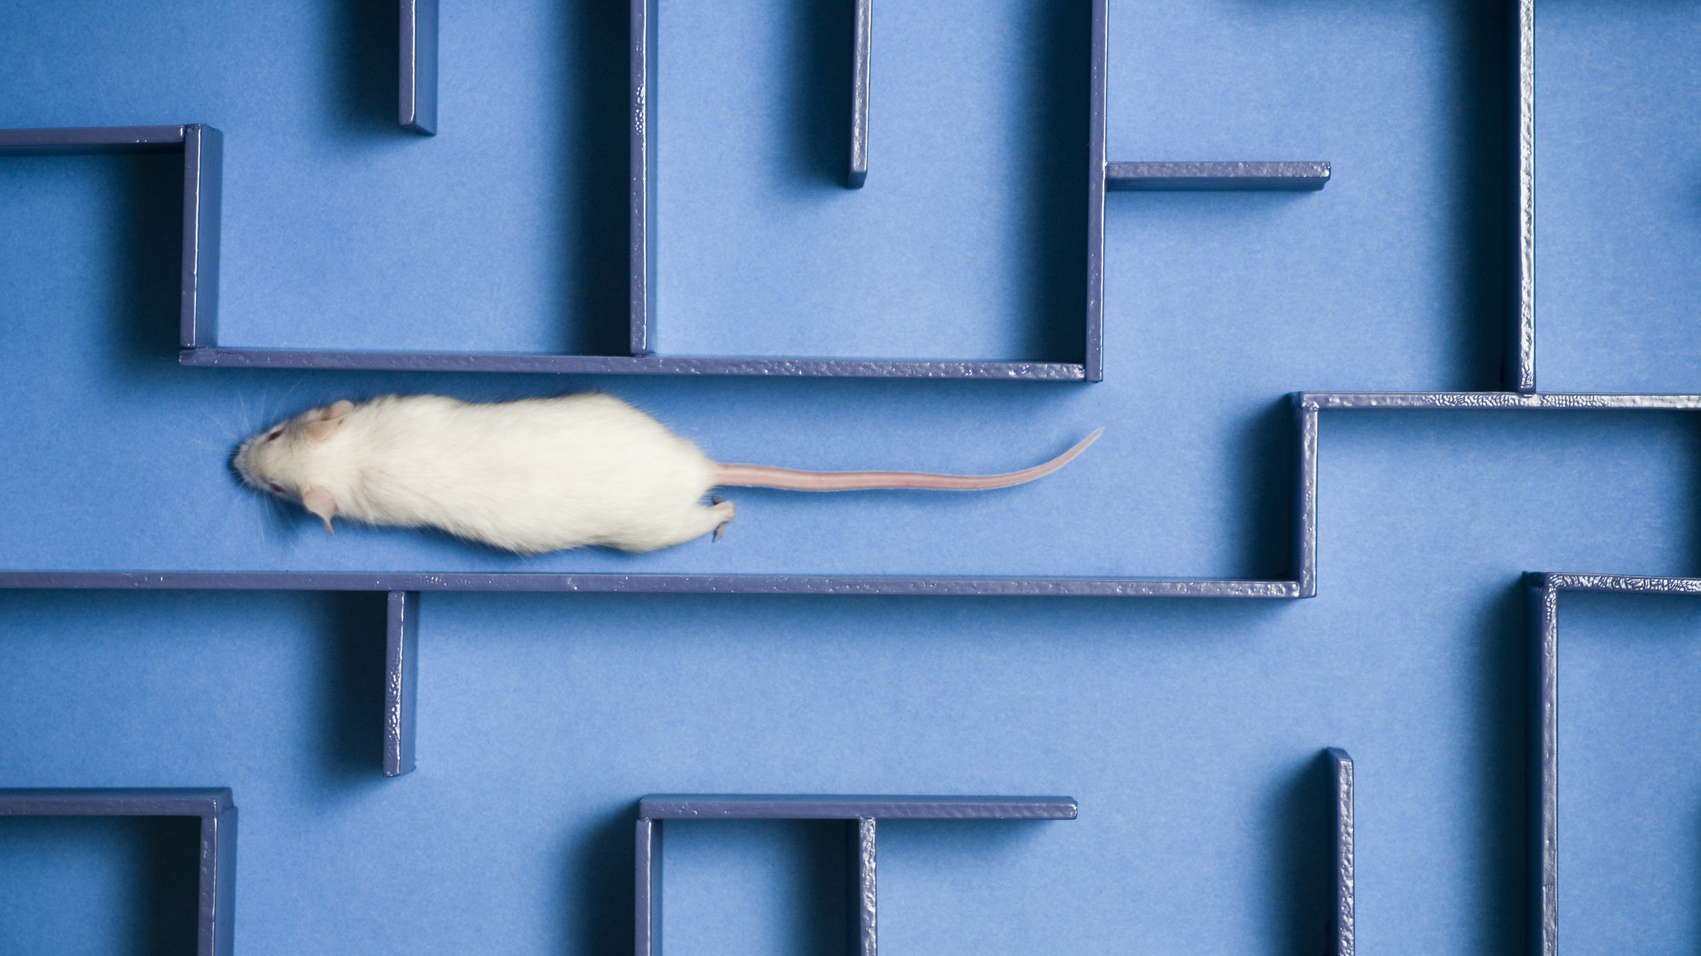 npr.org - Rae Ellen Bichell - Human Umbilical Cord Blood Helps Aging Mice Remember, Study Finds